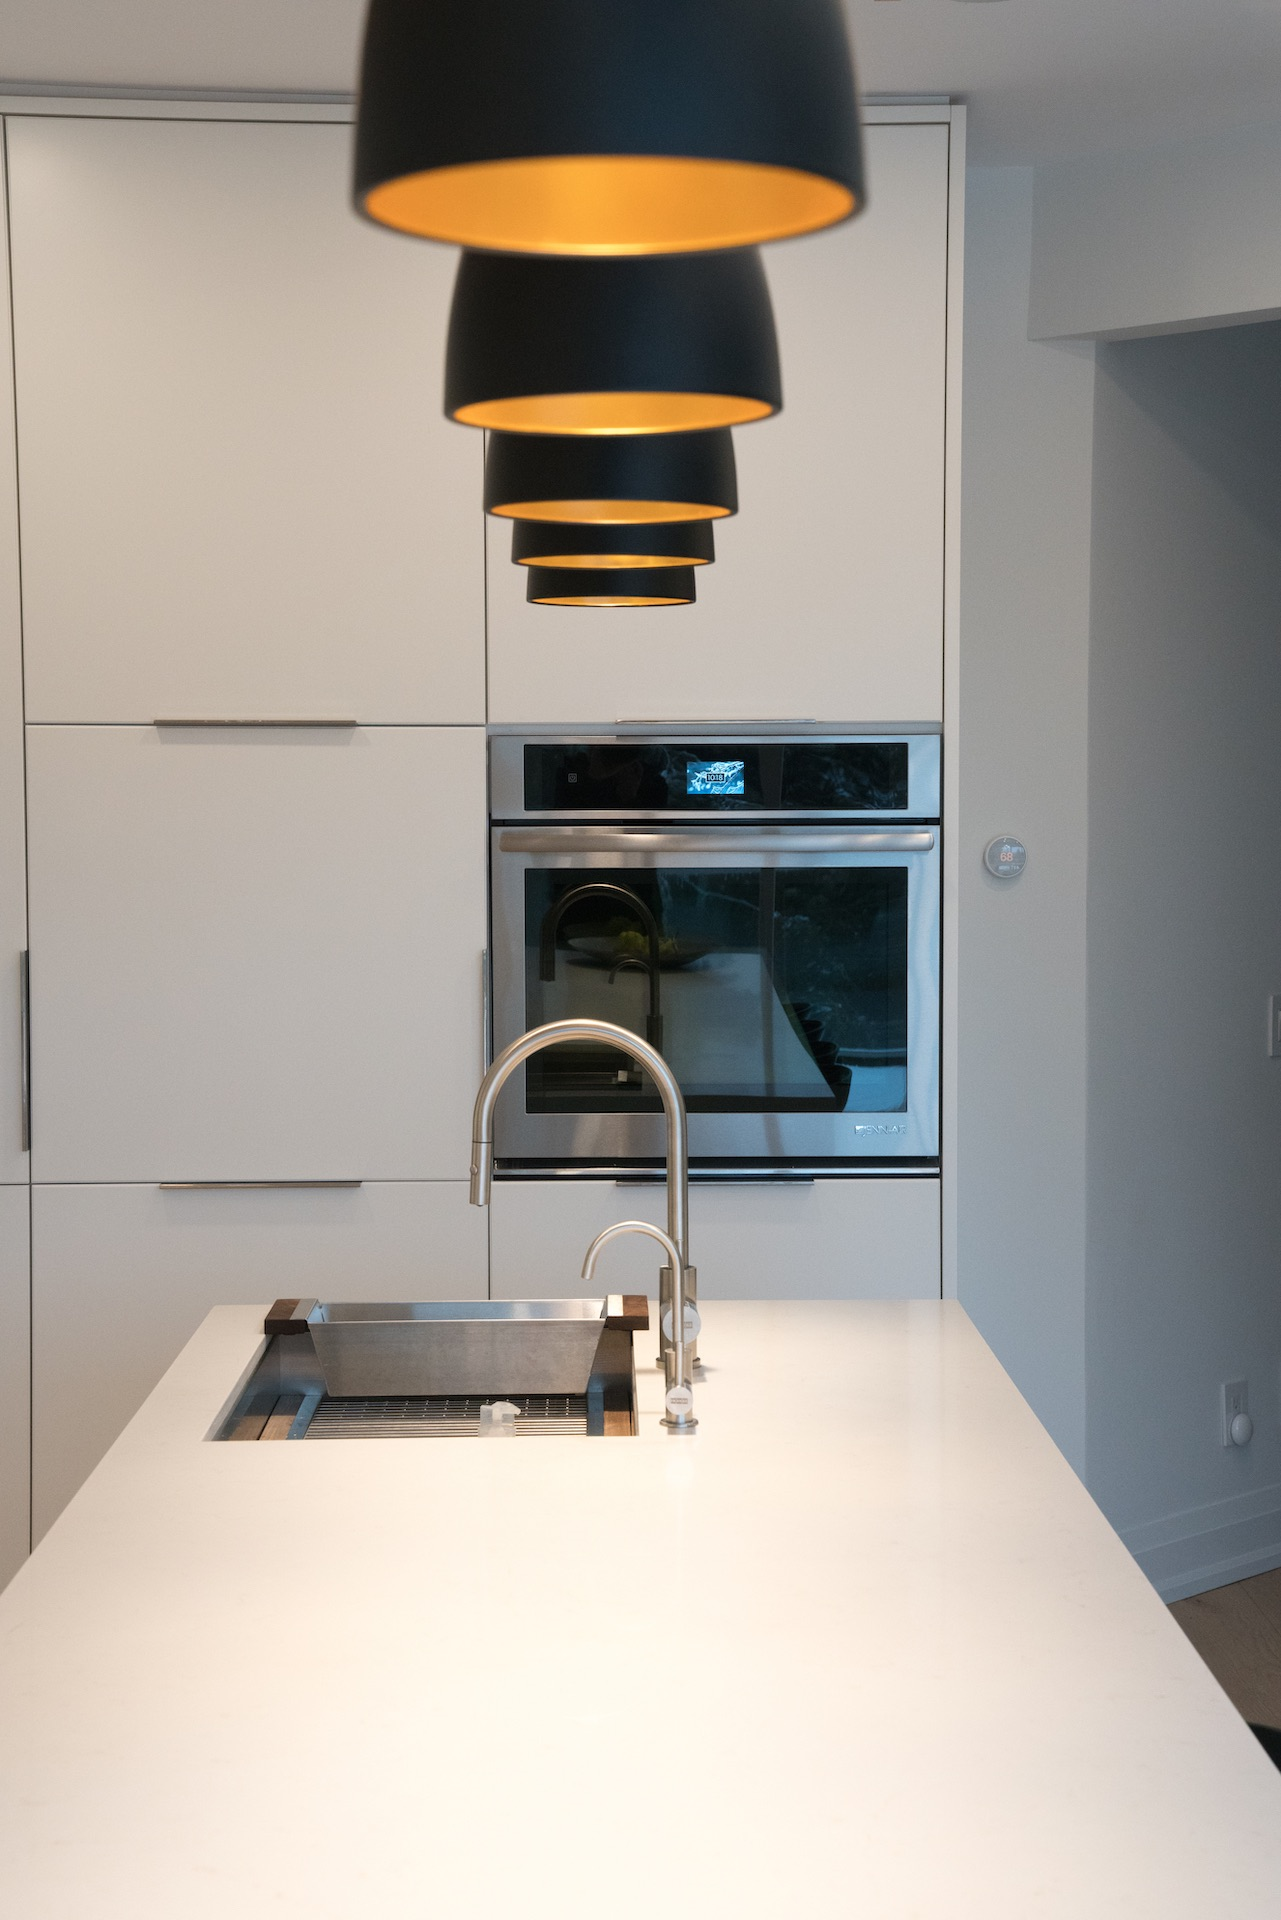 kitchen island with sink, black lights and oven in wall